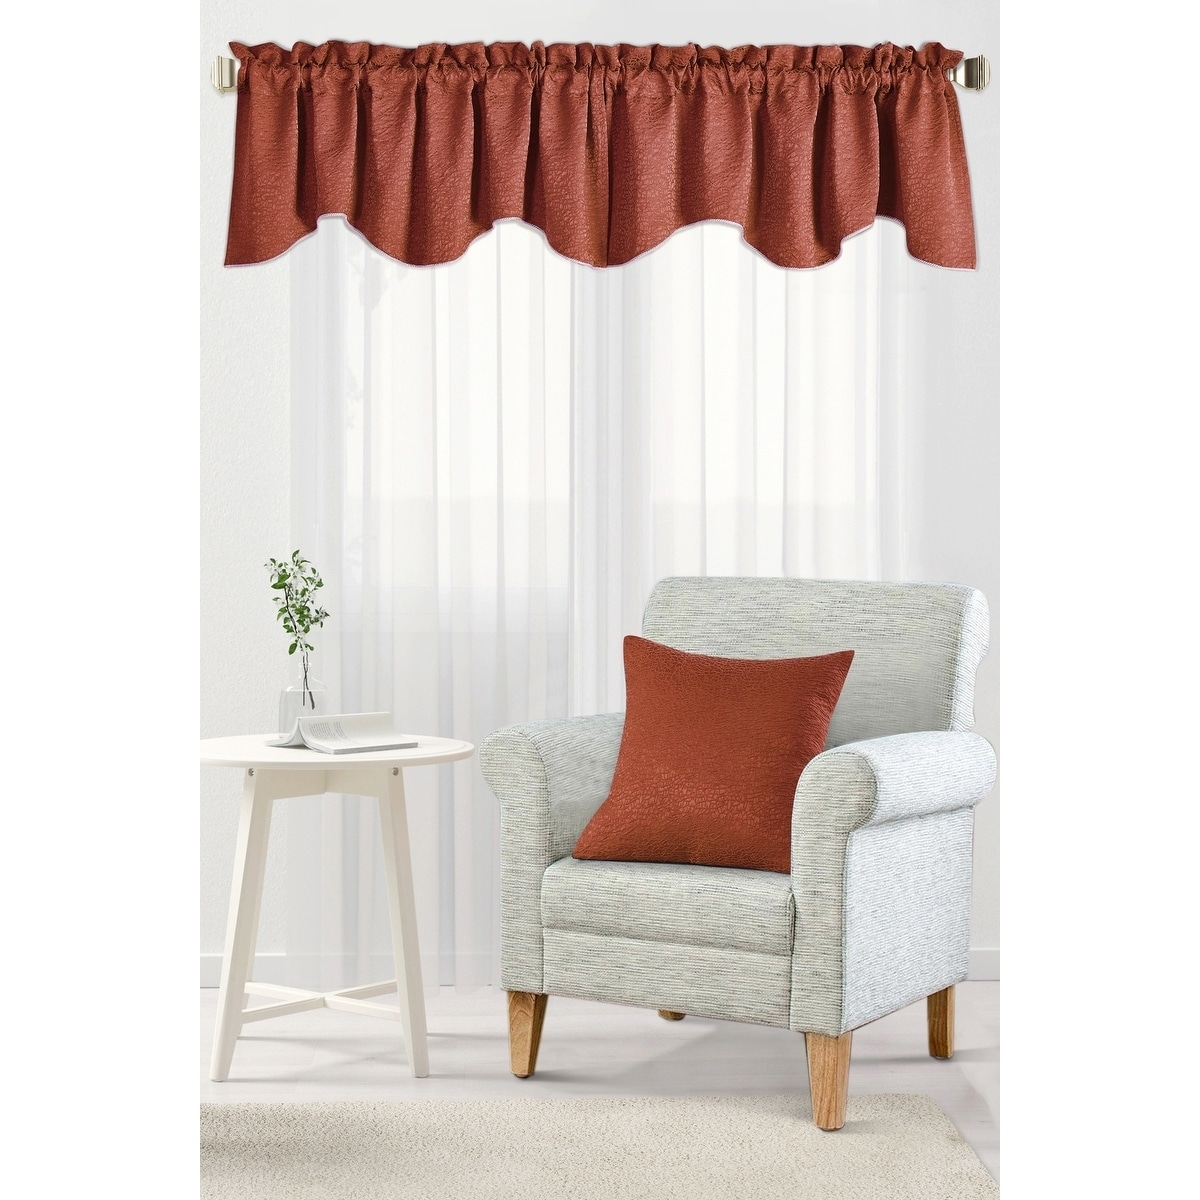 Bnf Home Inc Serenta Jacquard Chenille Galaxy Window Valance Pillow Shell Set Walmart Com Walmart Com